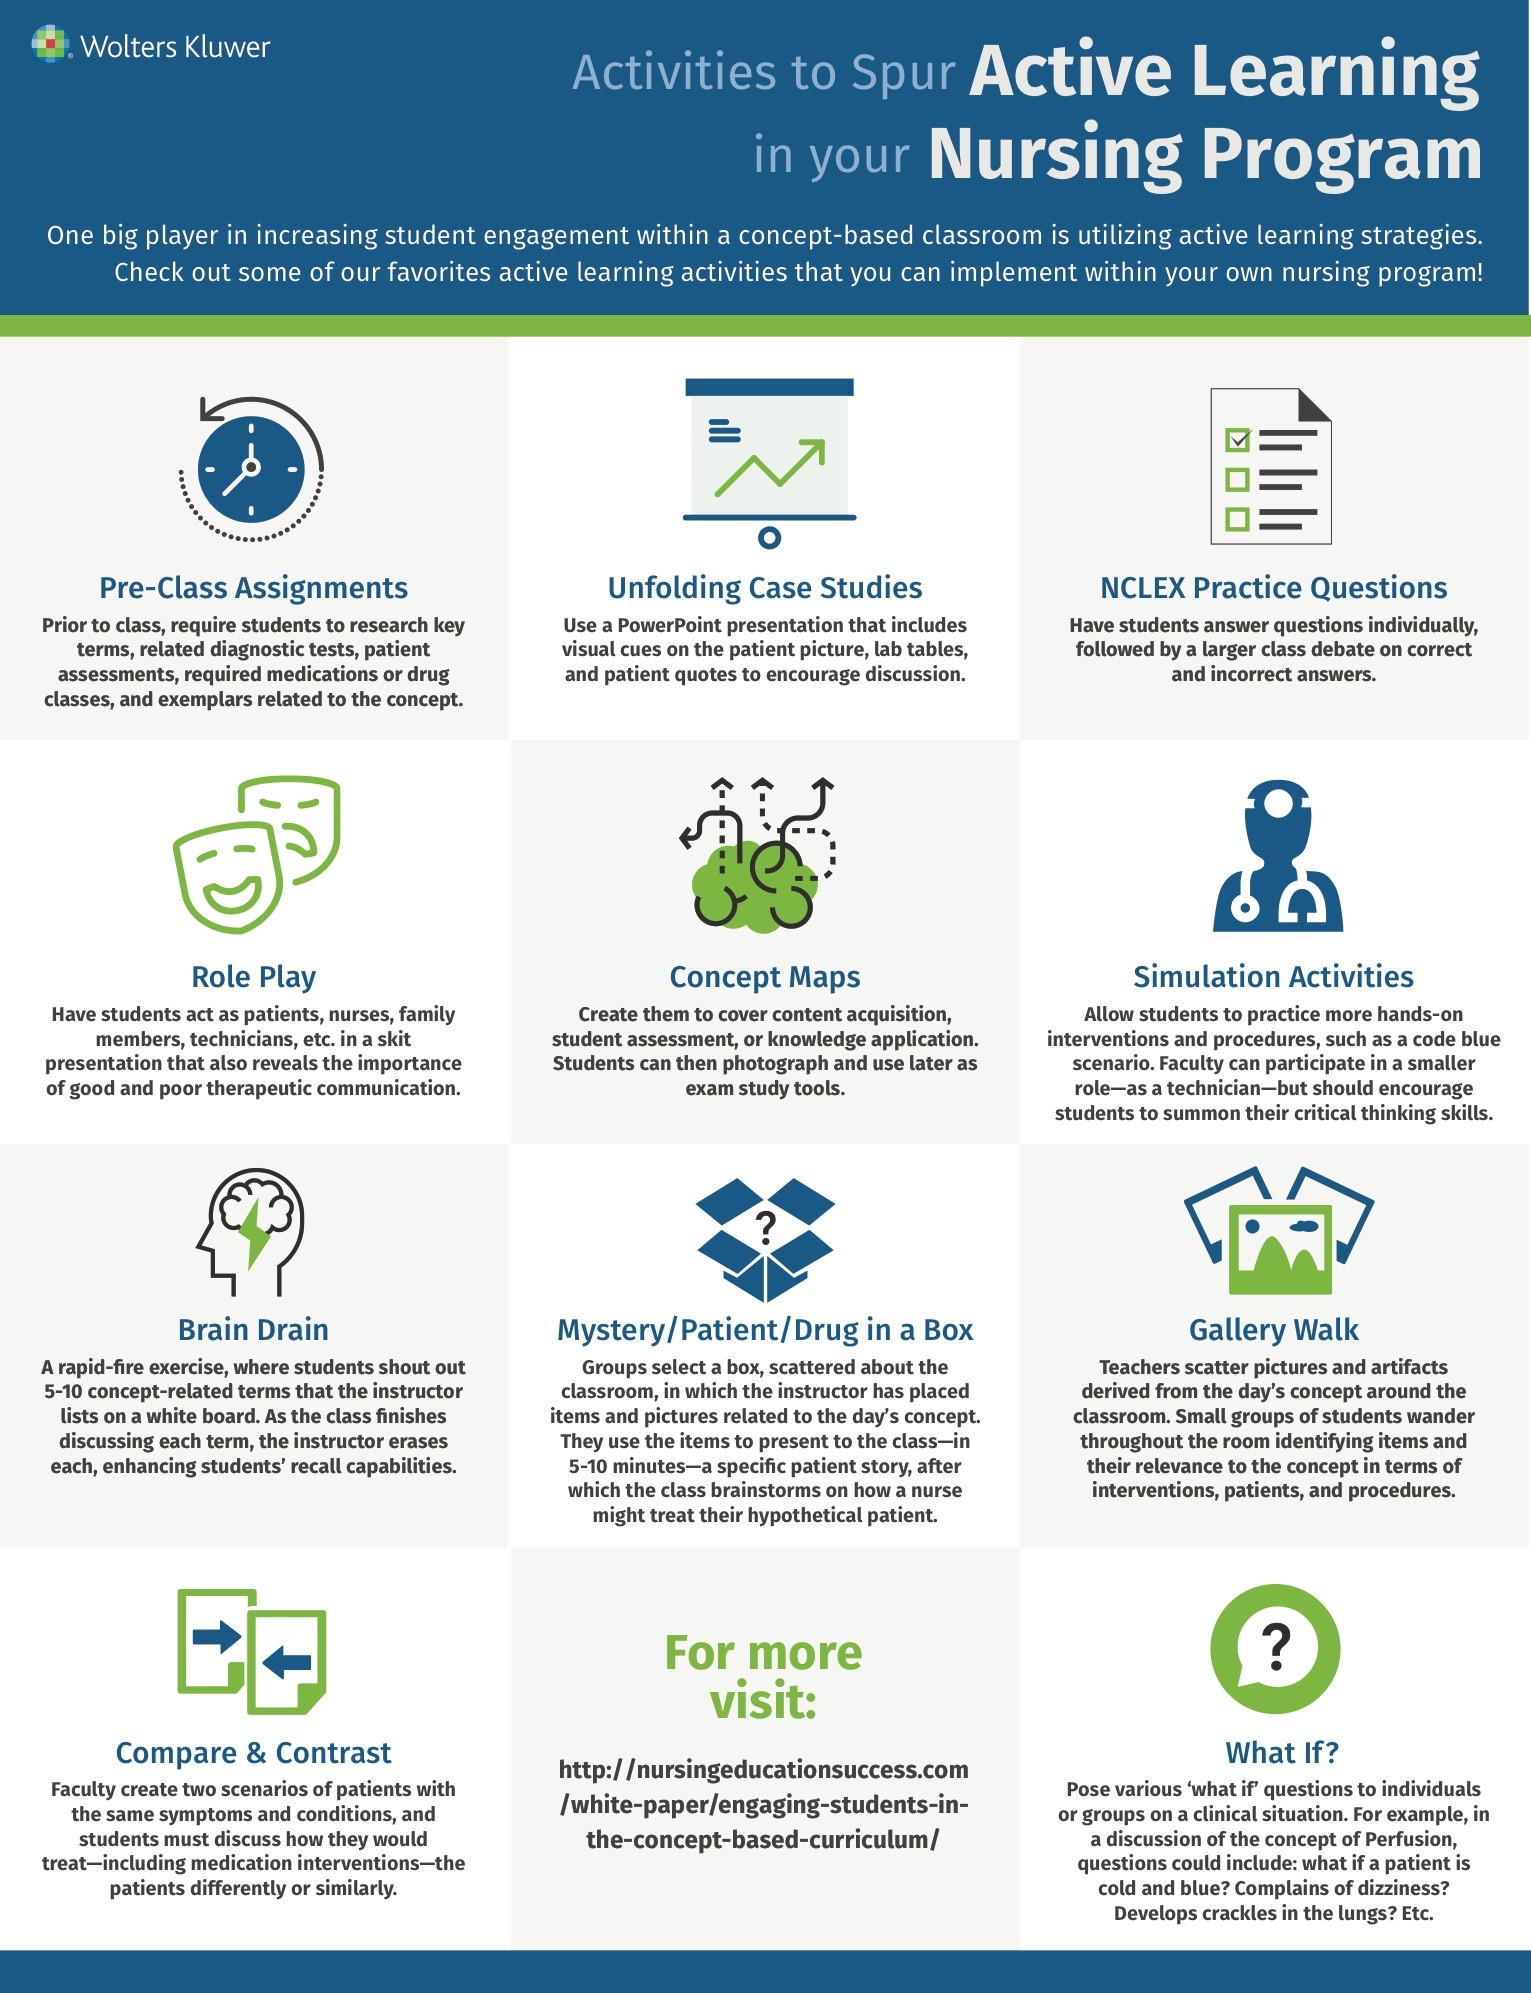 11 Active Learning Strategies To Engage Active Learning Wolters Kluwer